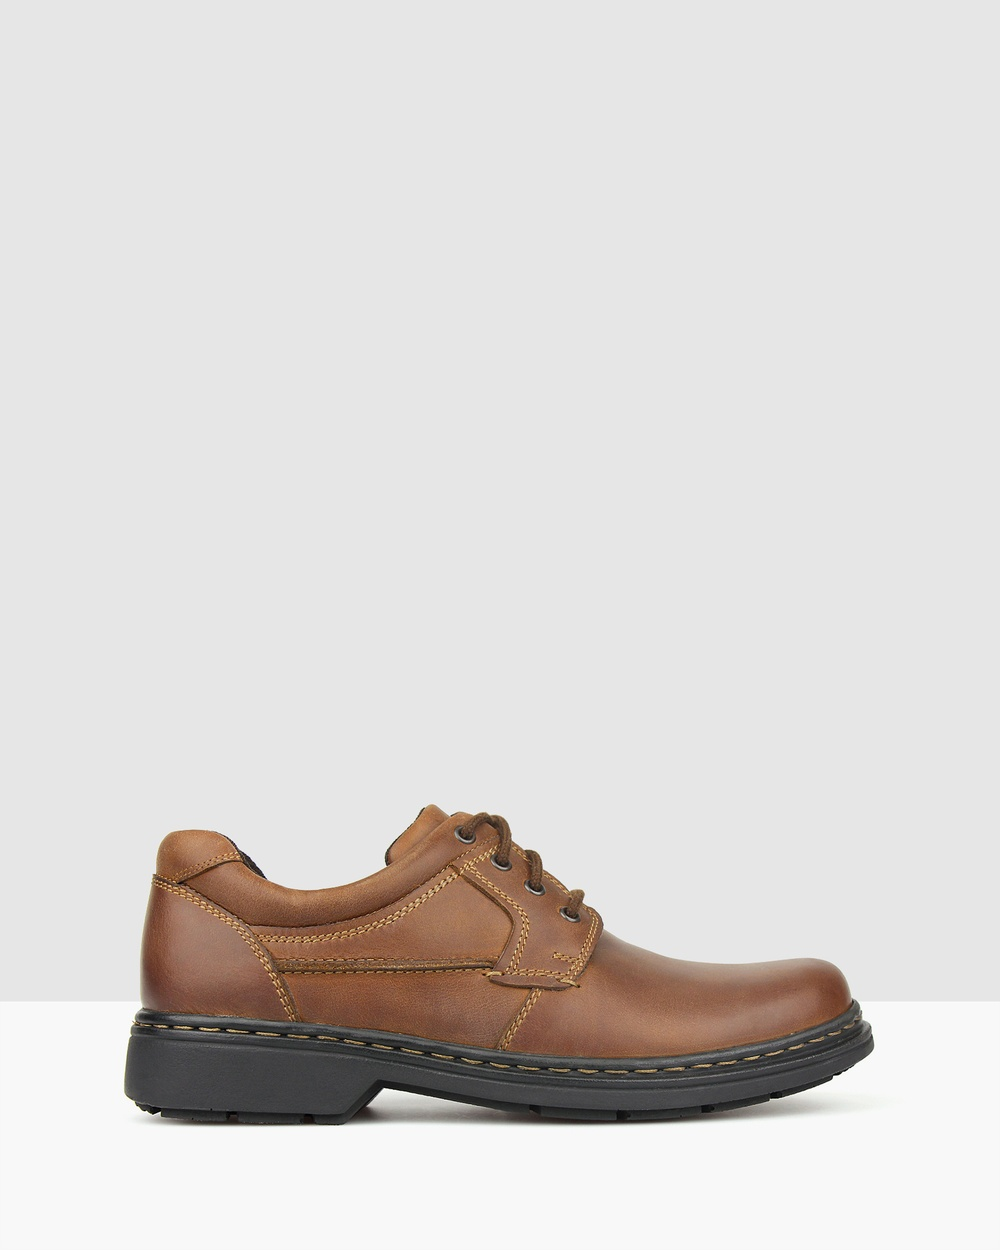 Airflex Larry Leather Lace Up Shoes Casual Chestnut Lace-Up